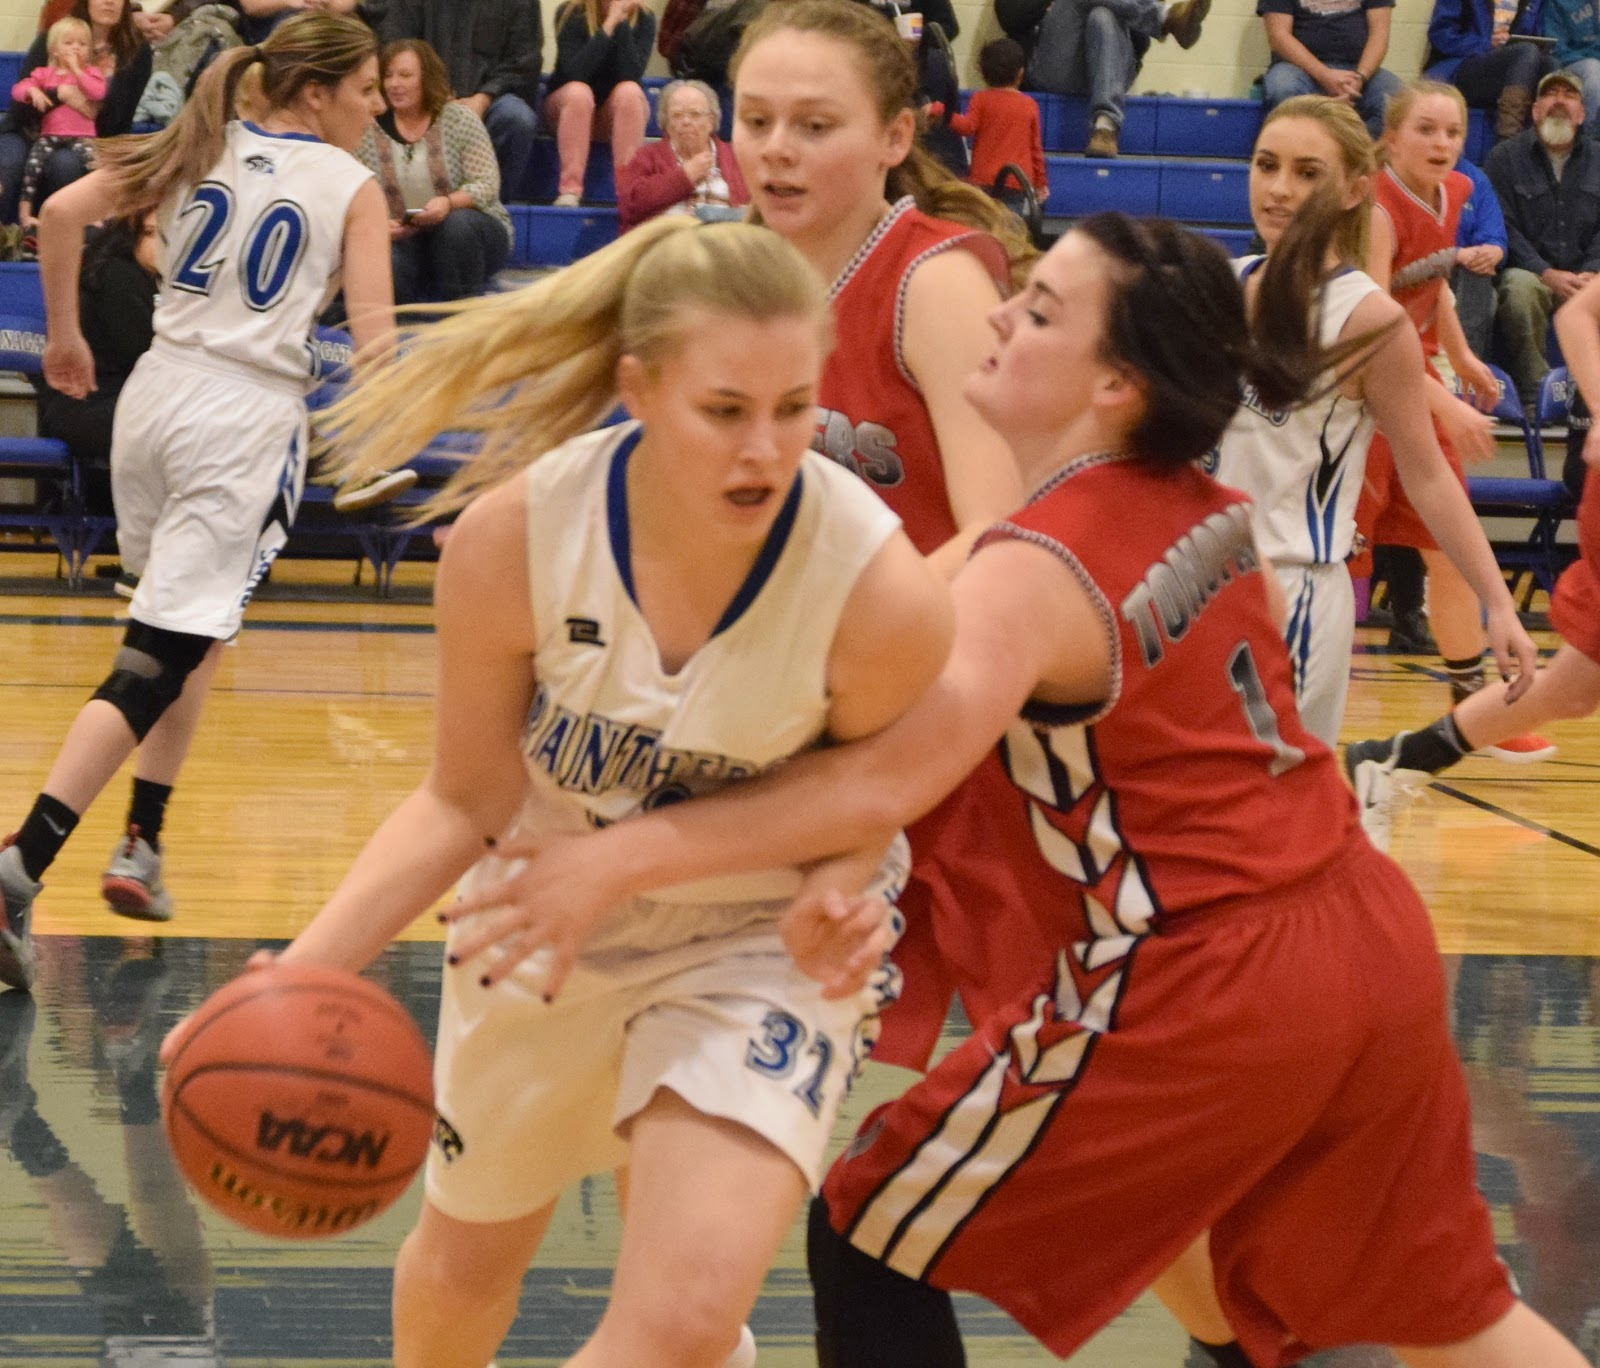 Panther Girls Move Closer Toward League Title